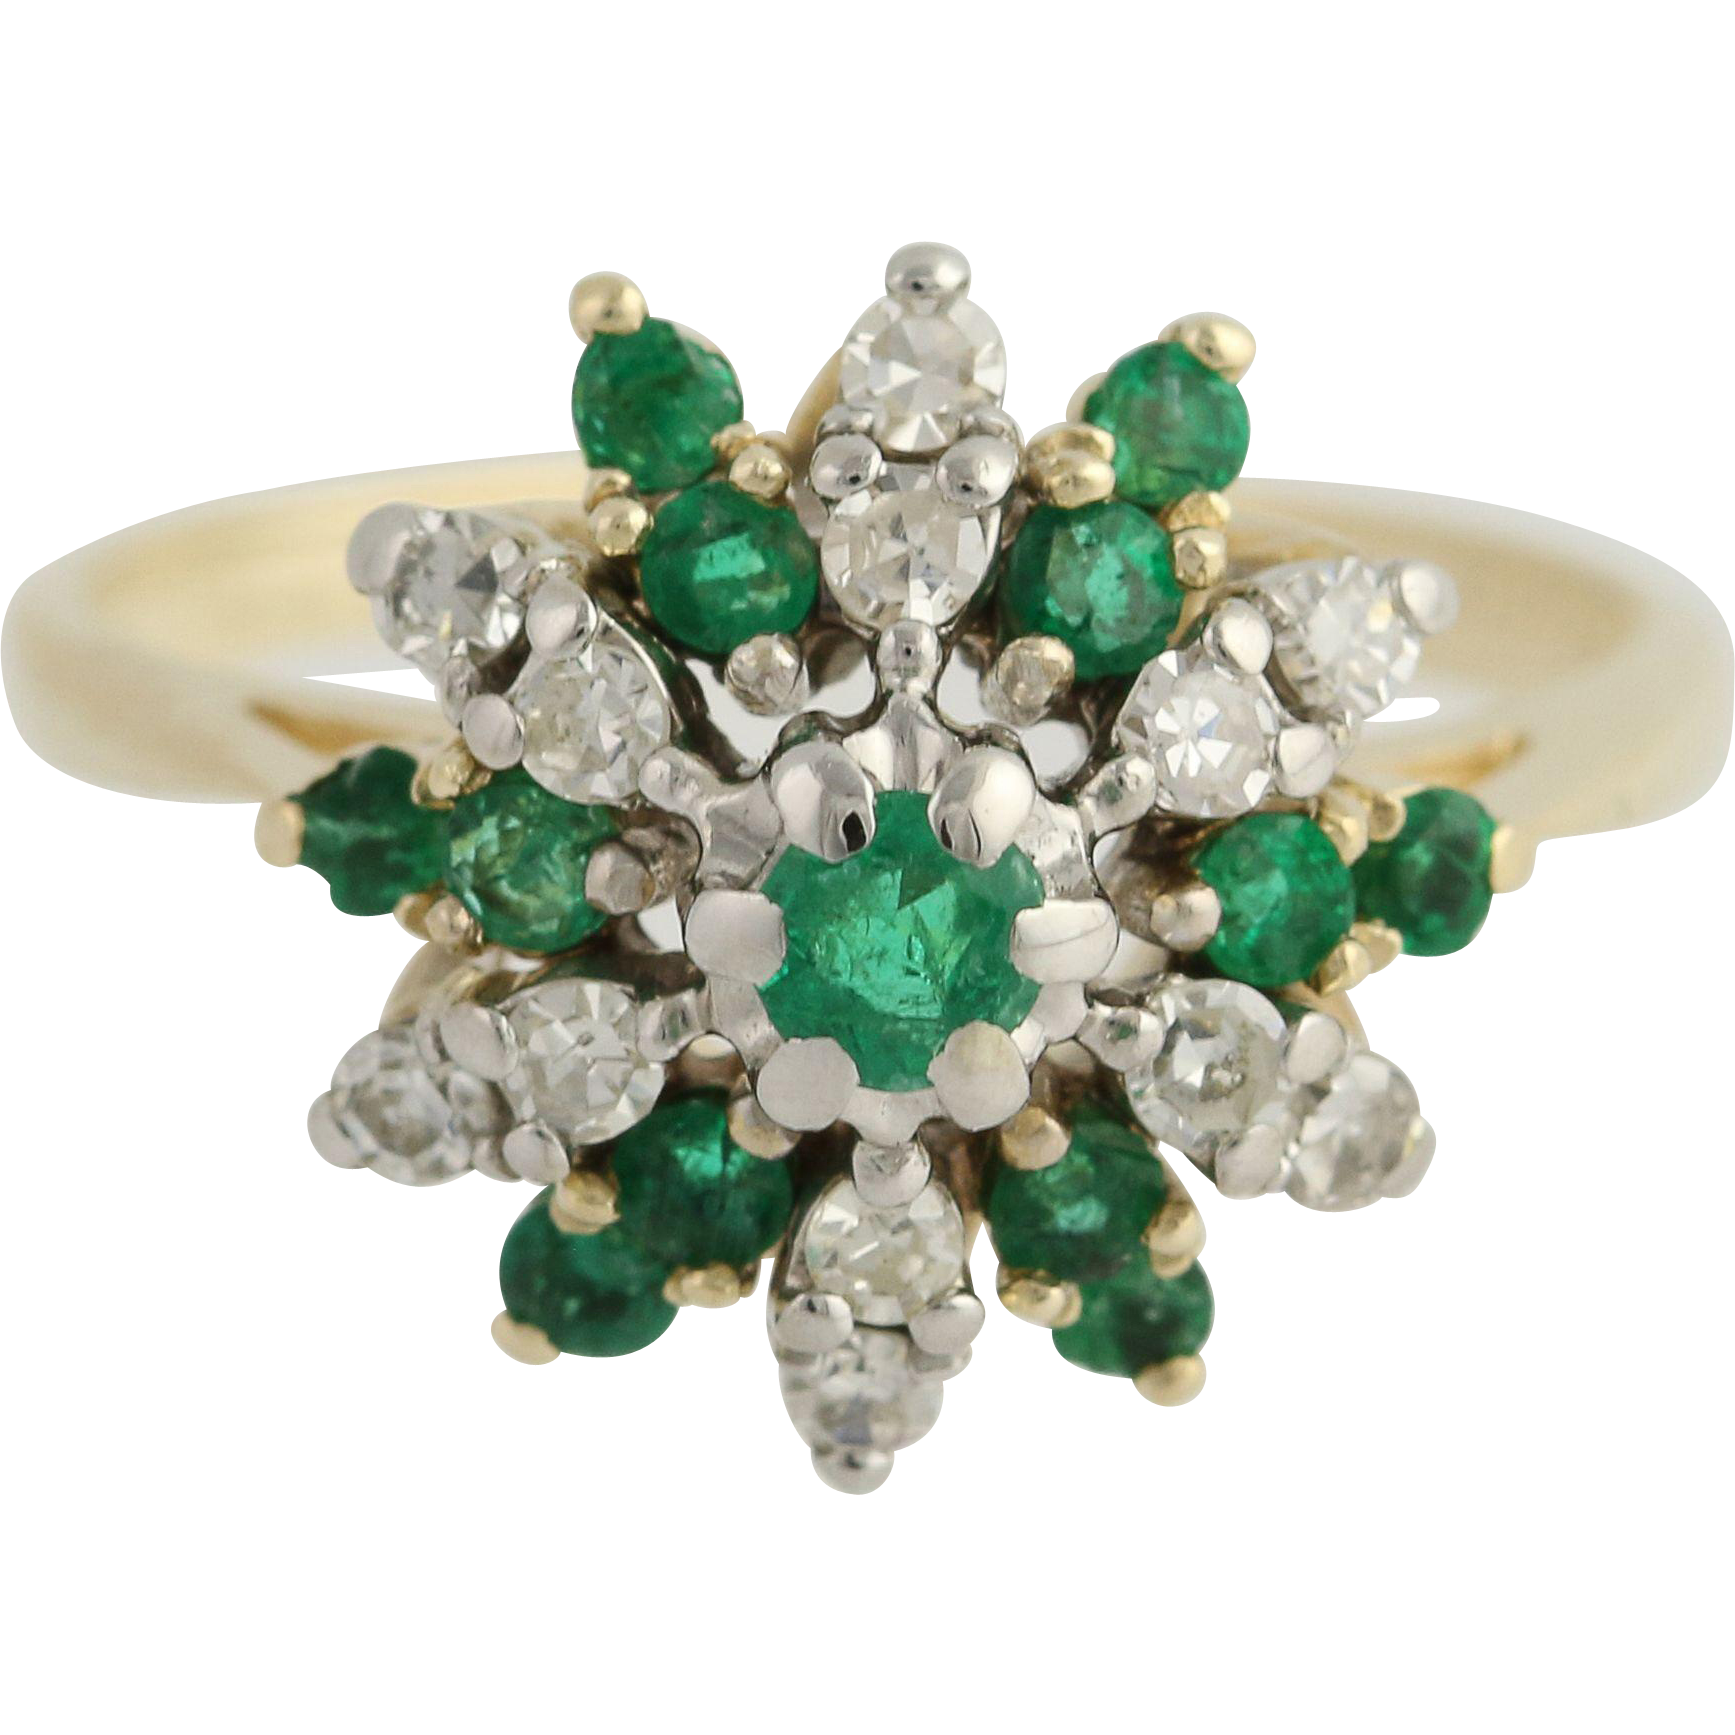 Emerald & Diamond Cluster Cocktail Ring - 14k Yellow & White Gold May .94ctw